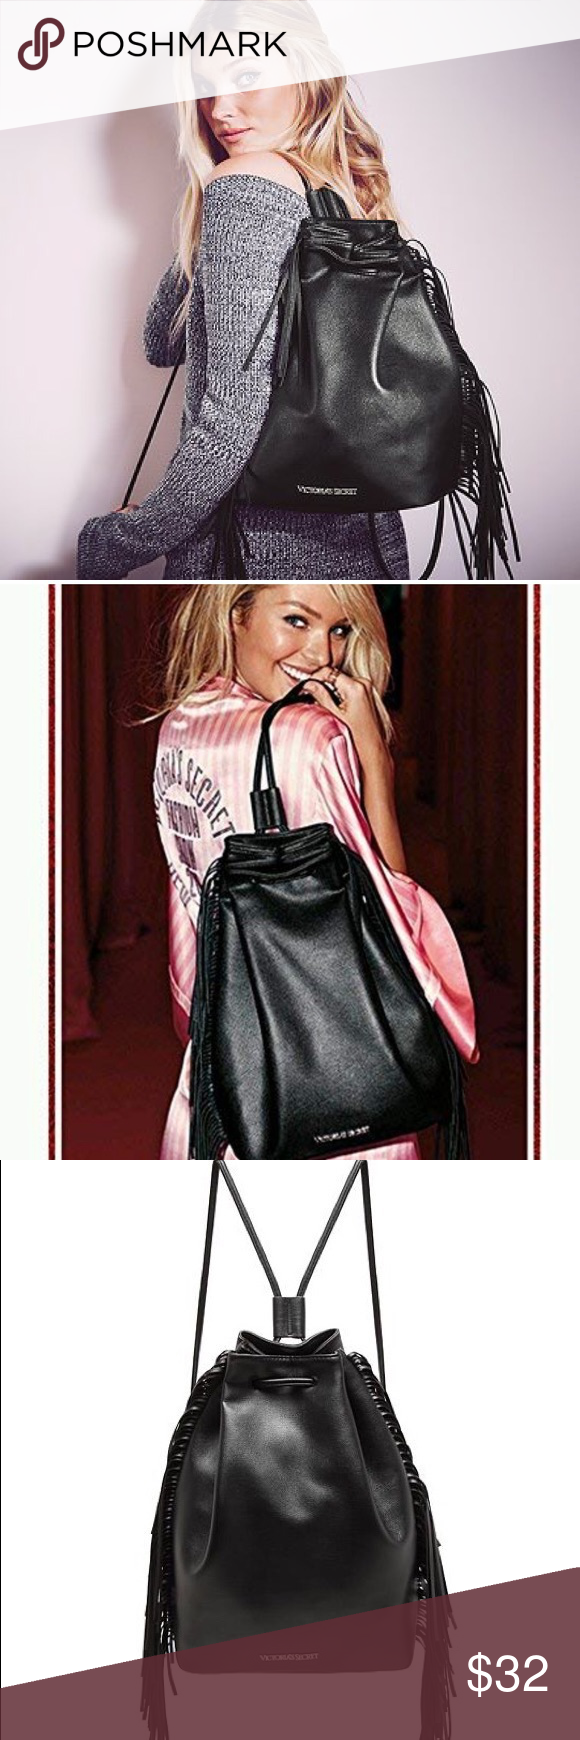 Victorias Secret Black fringe bag